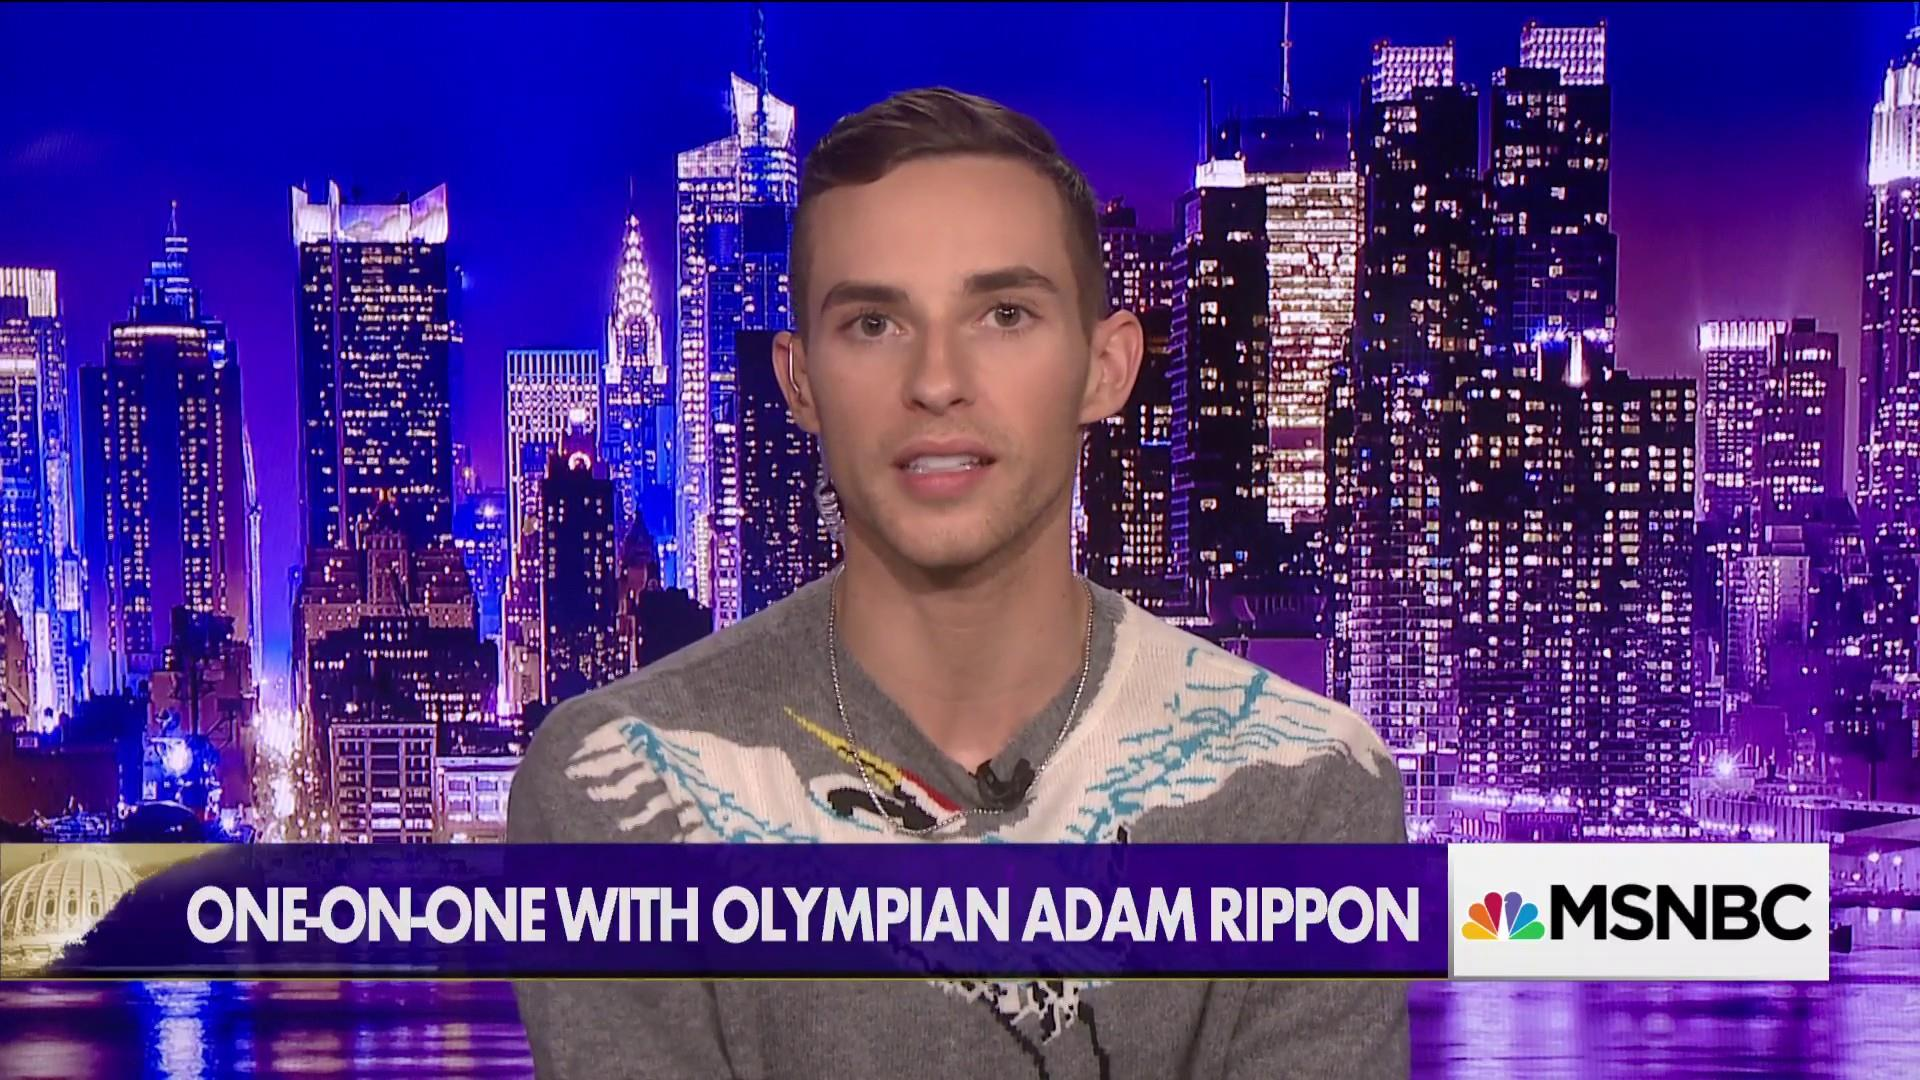 What Adam Rippon wants to tell Vice President Pence